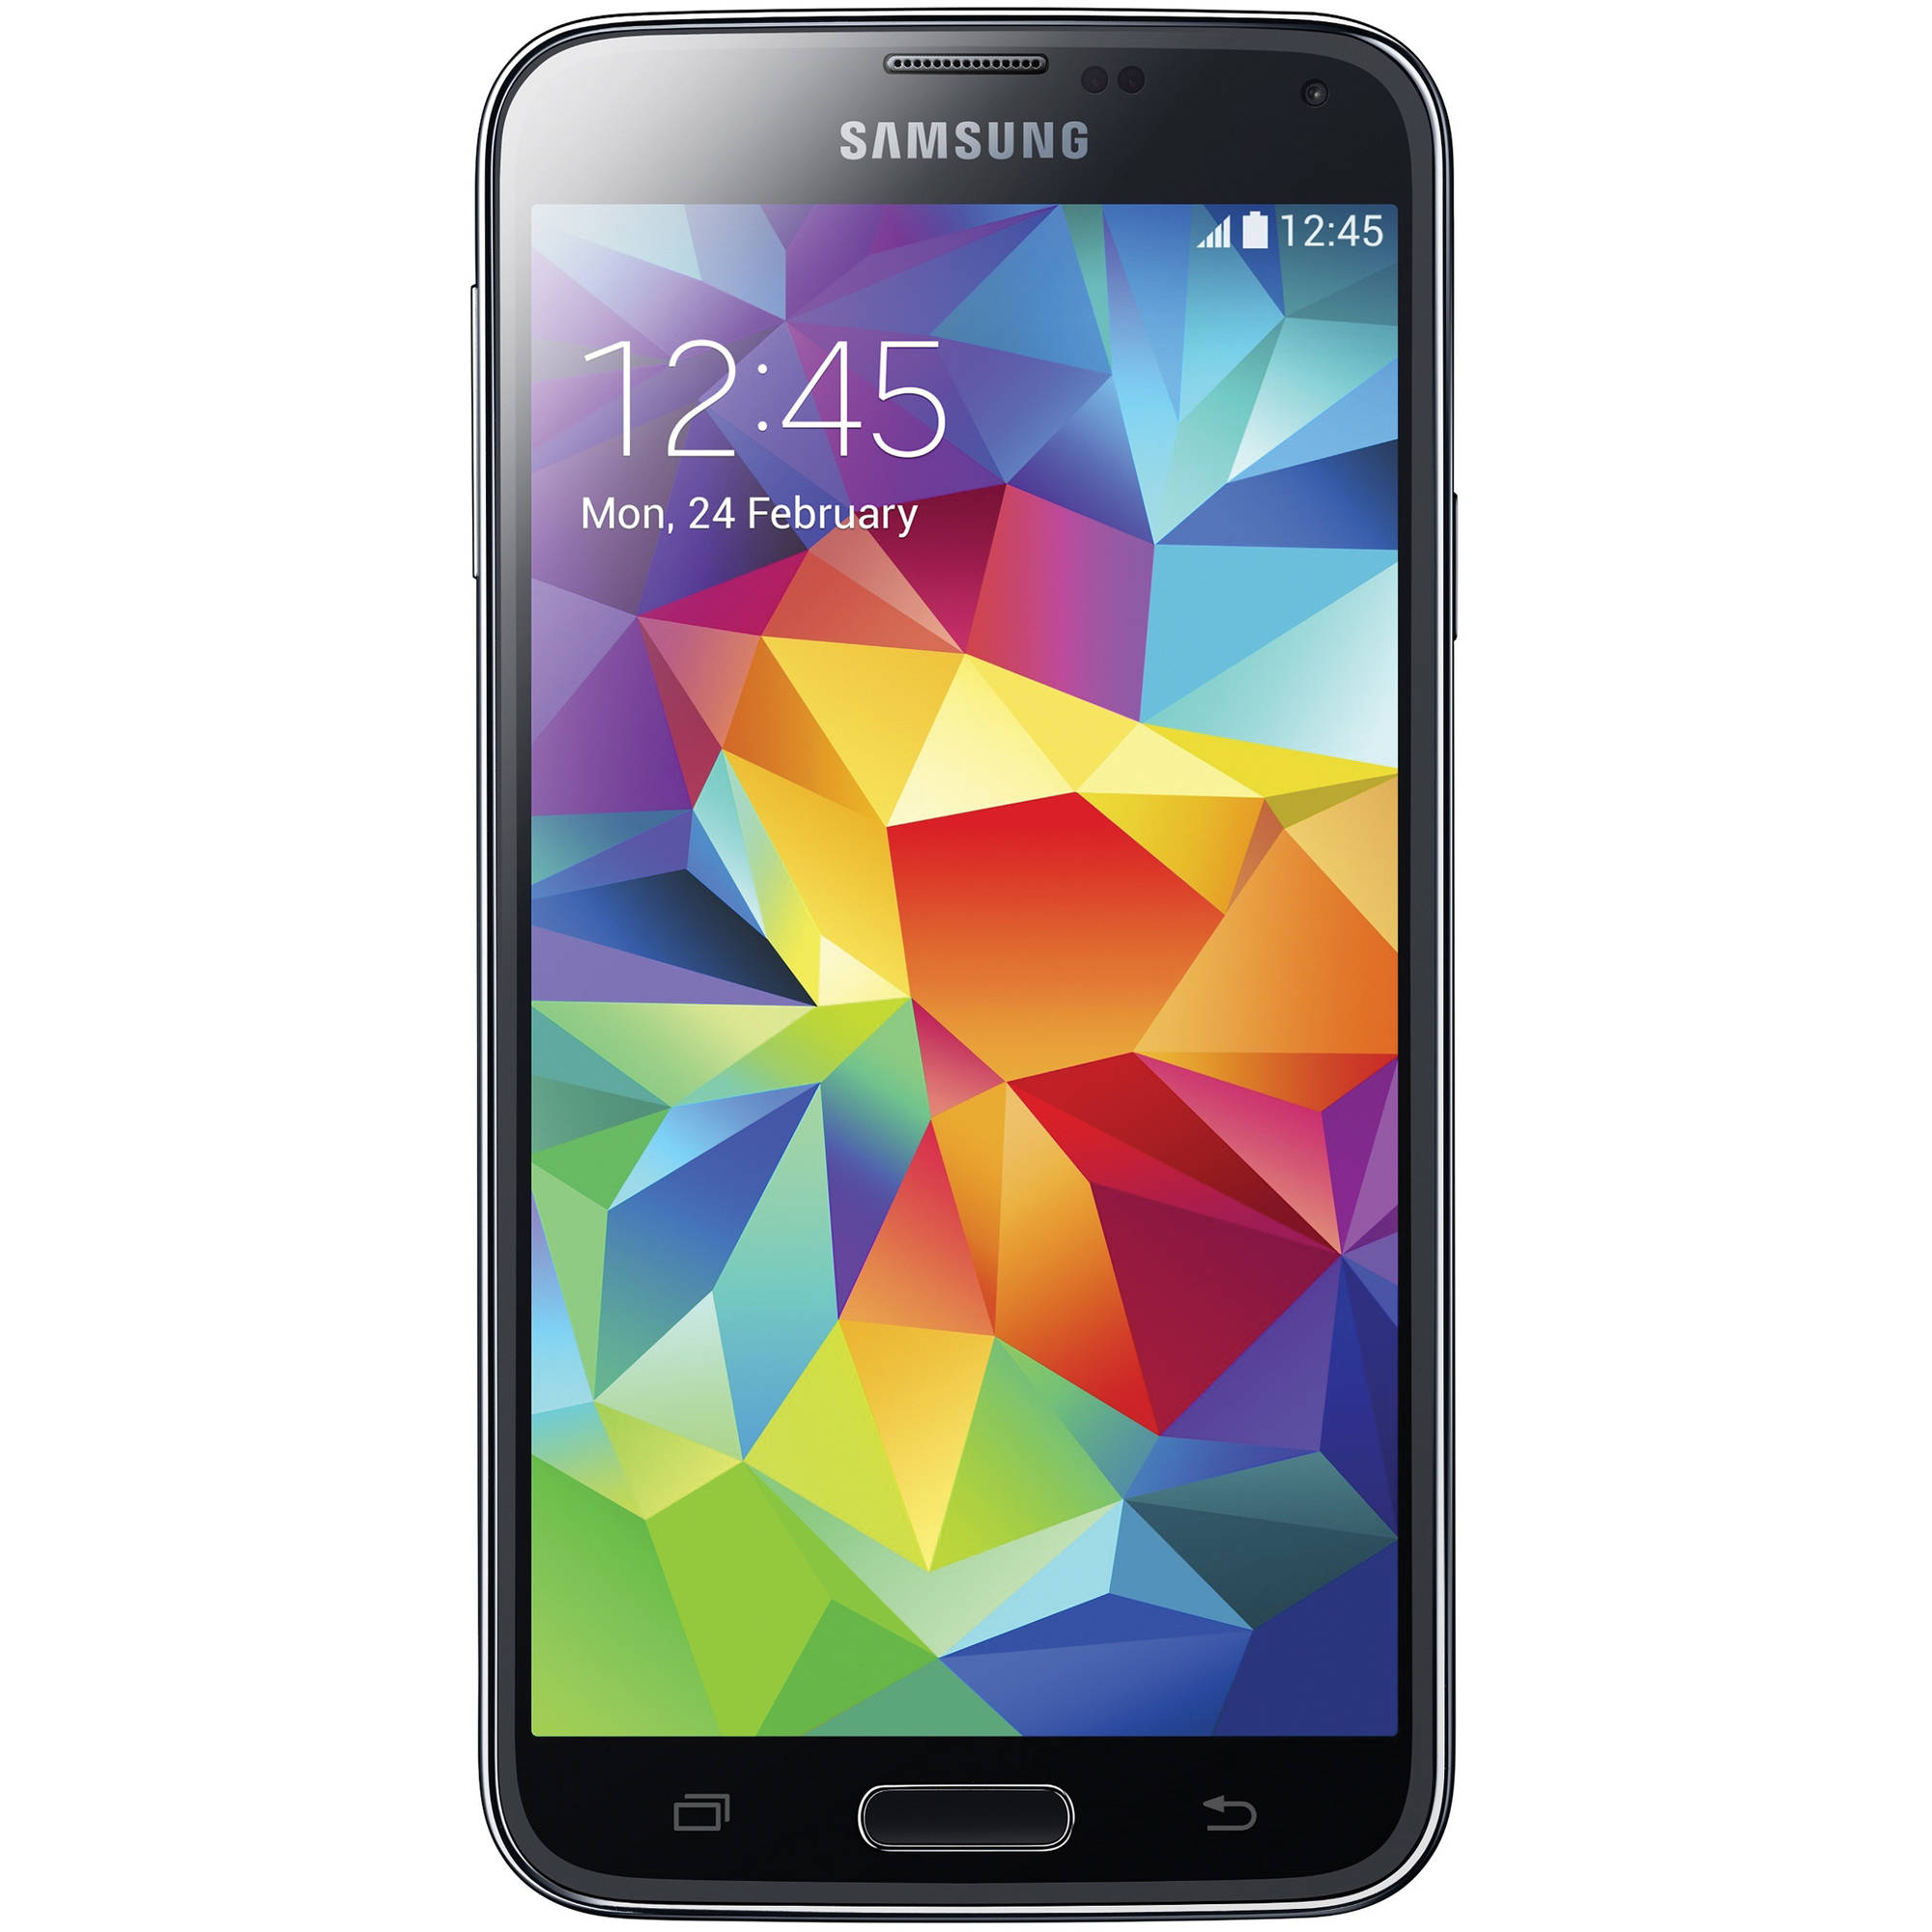 Samsung Galaxy S5 Duos 16GB Smartphone (Unlocked, Charcoal Black)